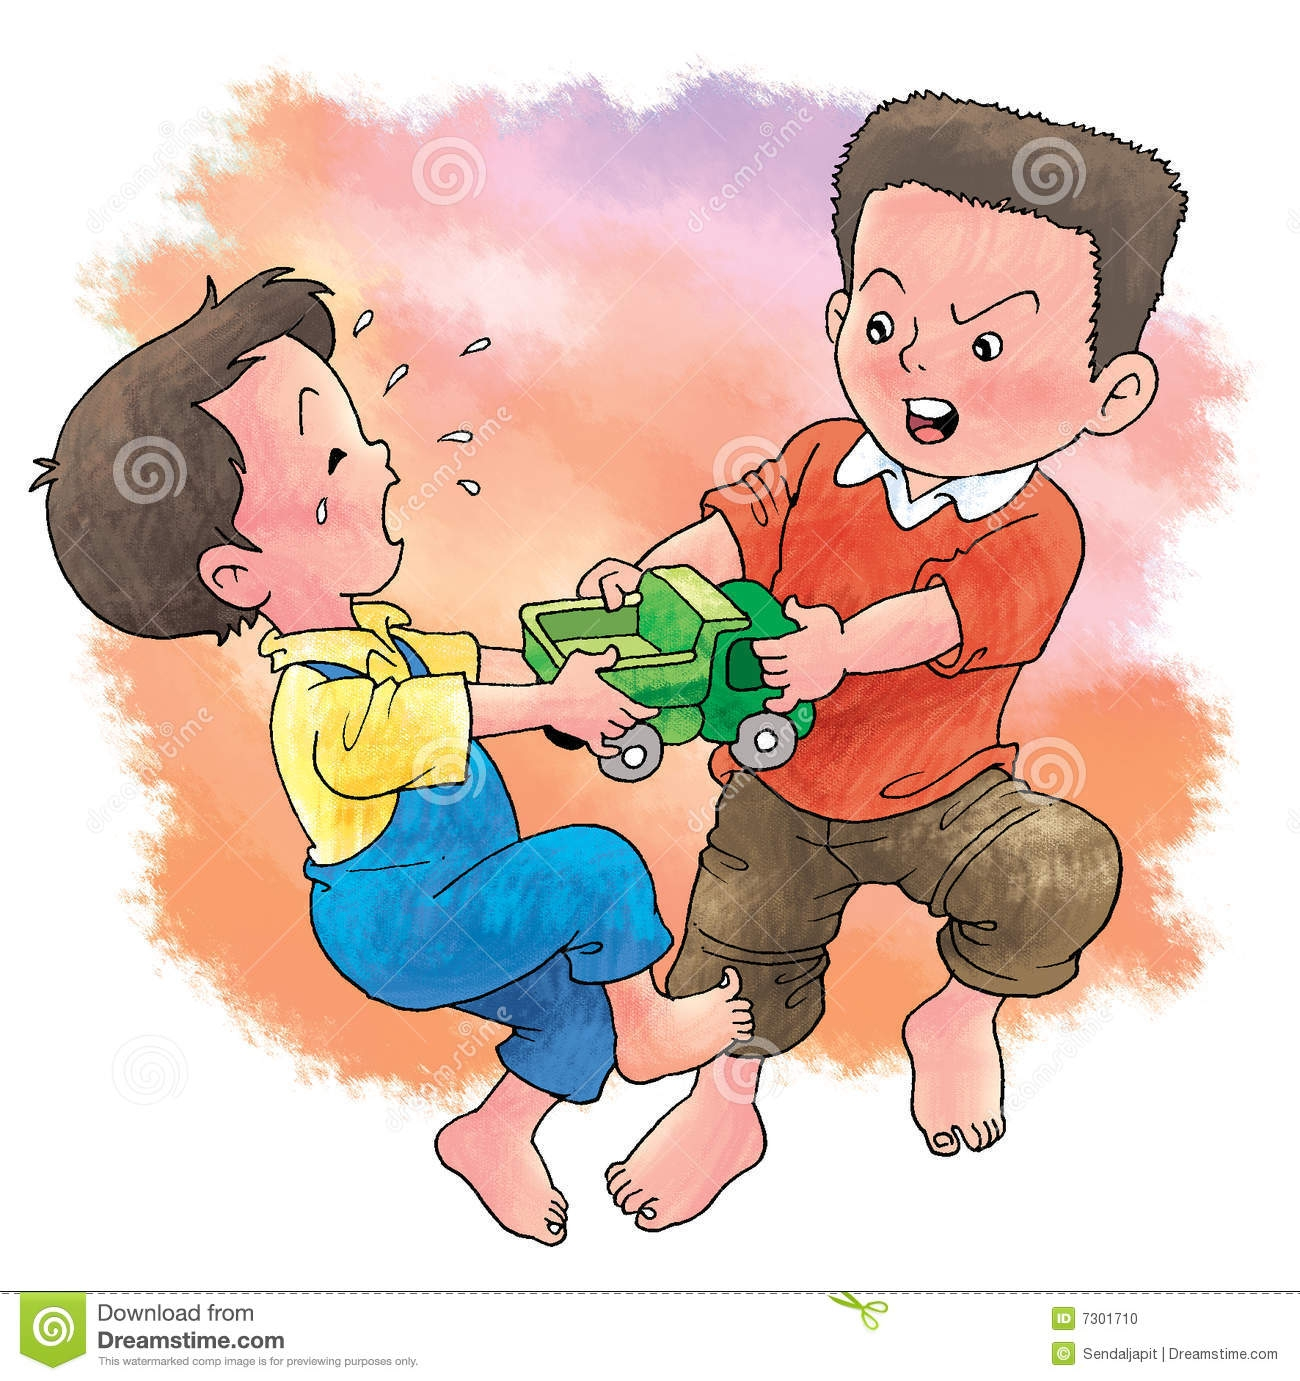 Children quarreling clipart.